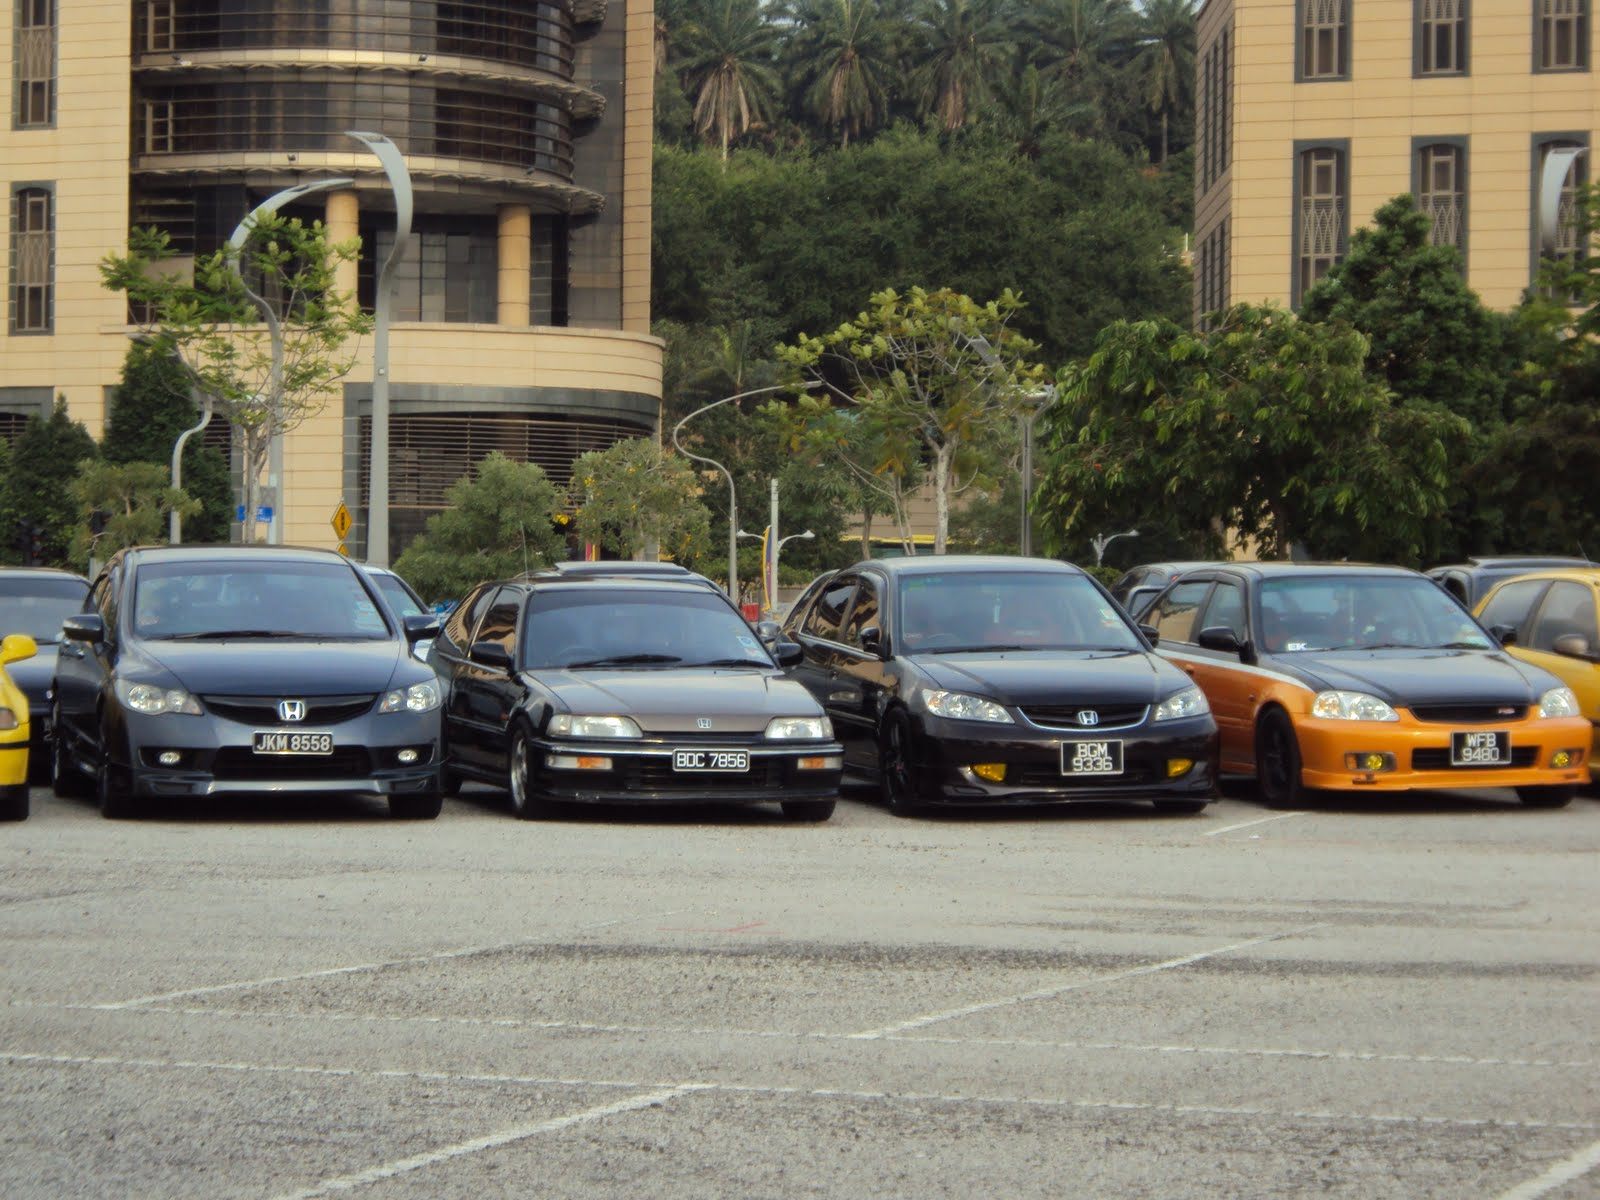 Civic Clubs Solana Beach Mail: AInMuCuXx'S BL0g: MaLaYsIaN HOnDa CiViC CLuB